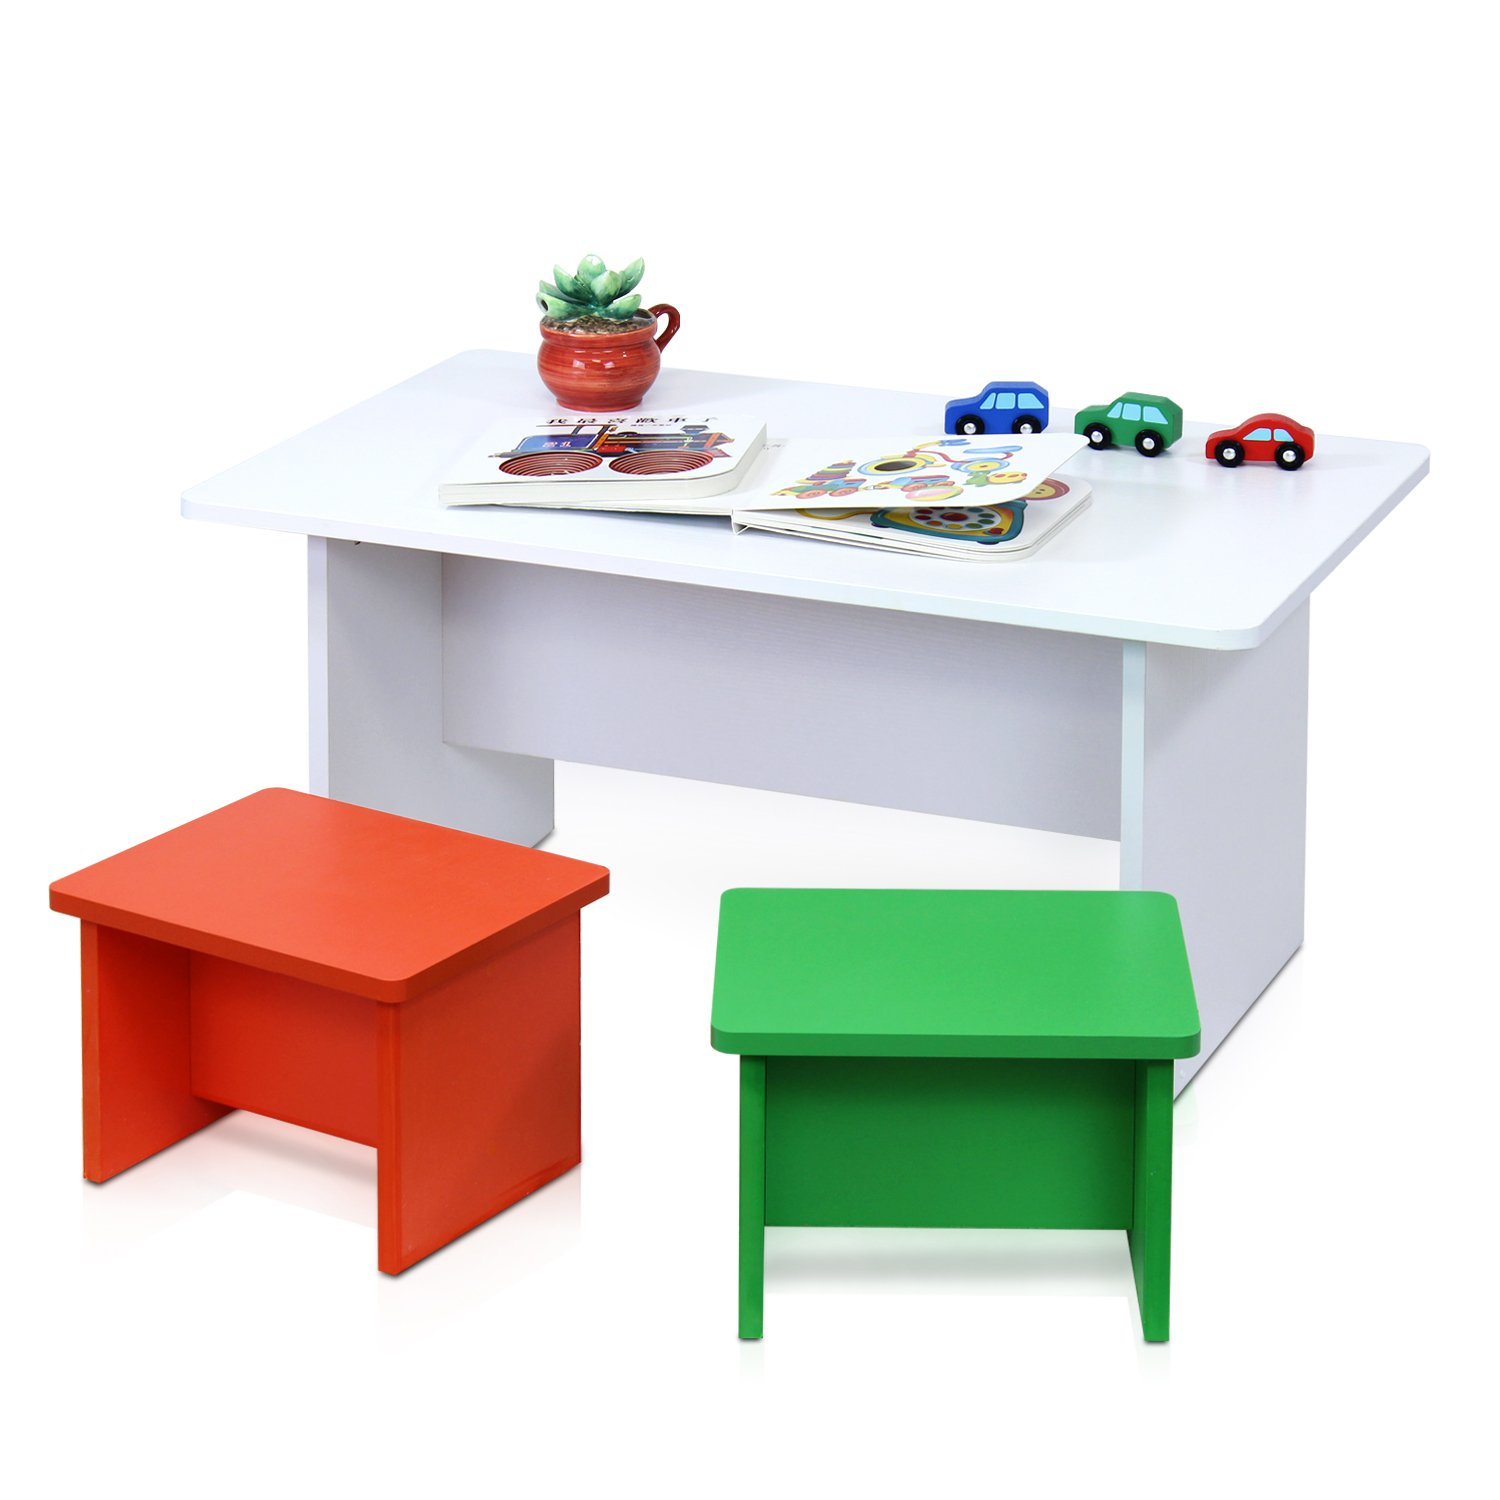 Amazoncom Furinno FNAM Nino Fun Color Kids Table With - Wayfair kids table and chairs